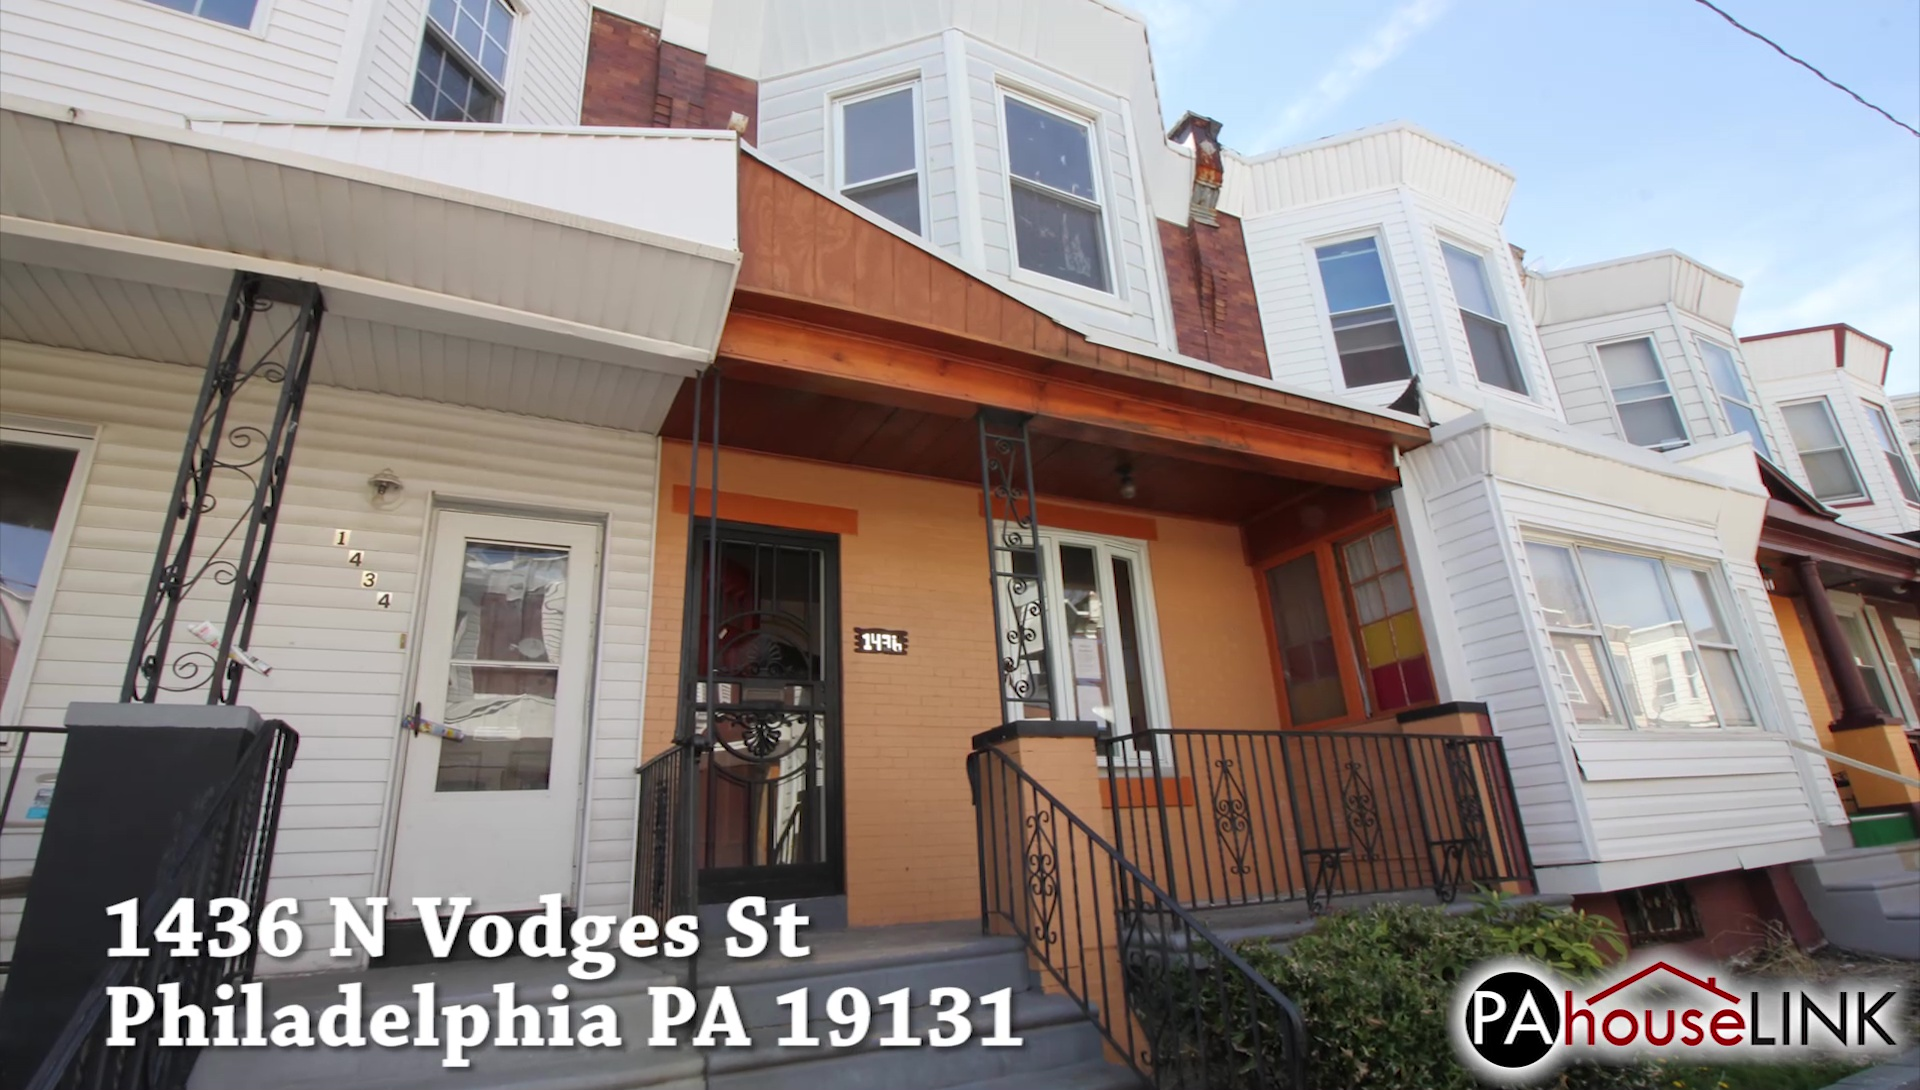 1436 N Vodges St Philadelphia PA 19131 | Coming Soon Foreclosure Properties Philadelphia PA 19131